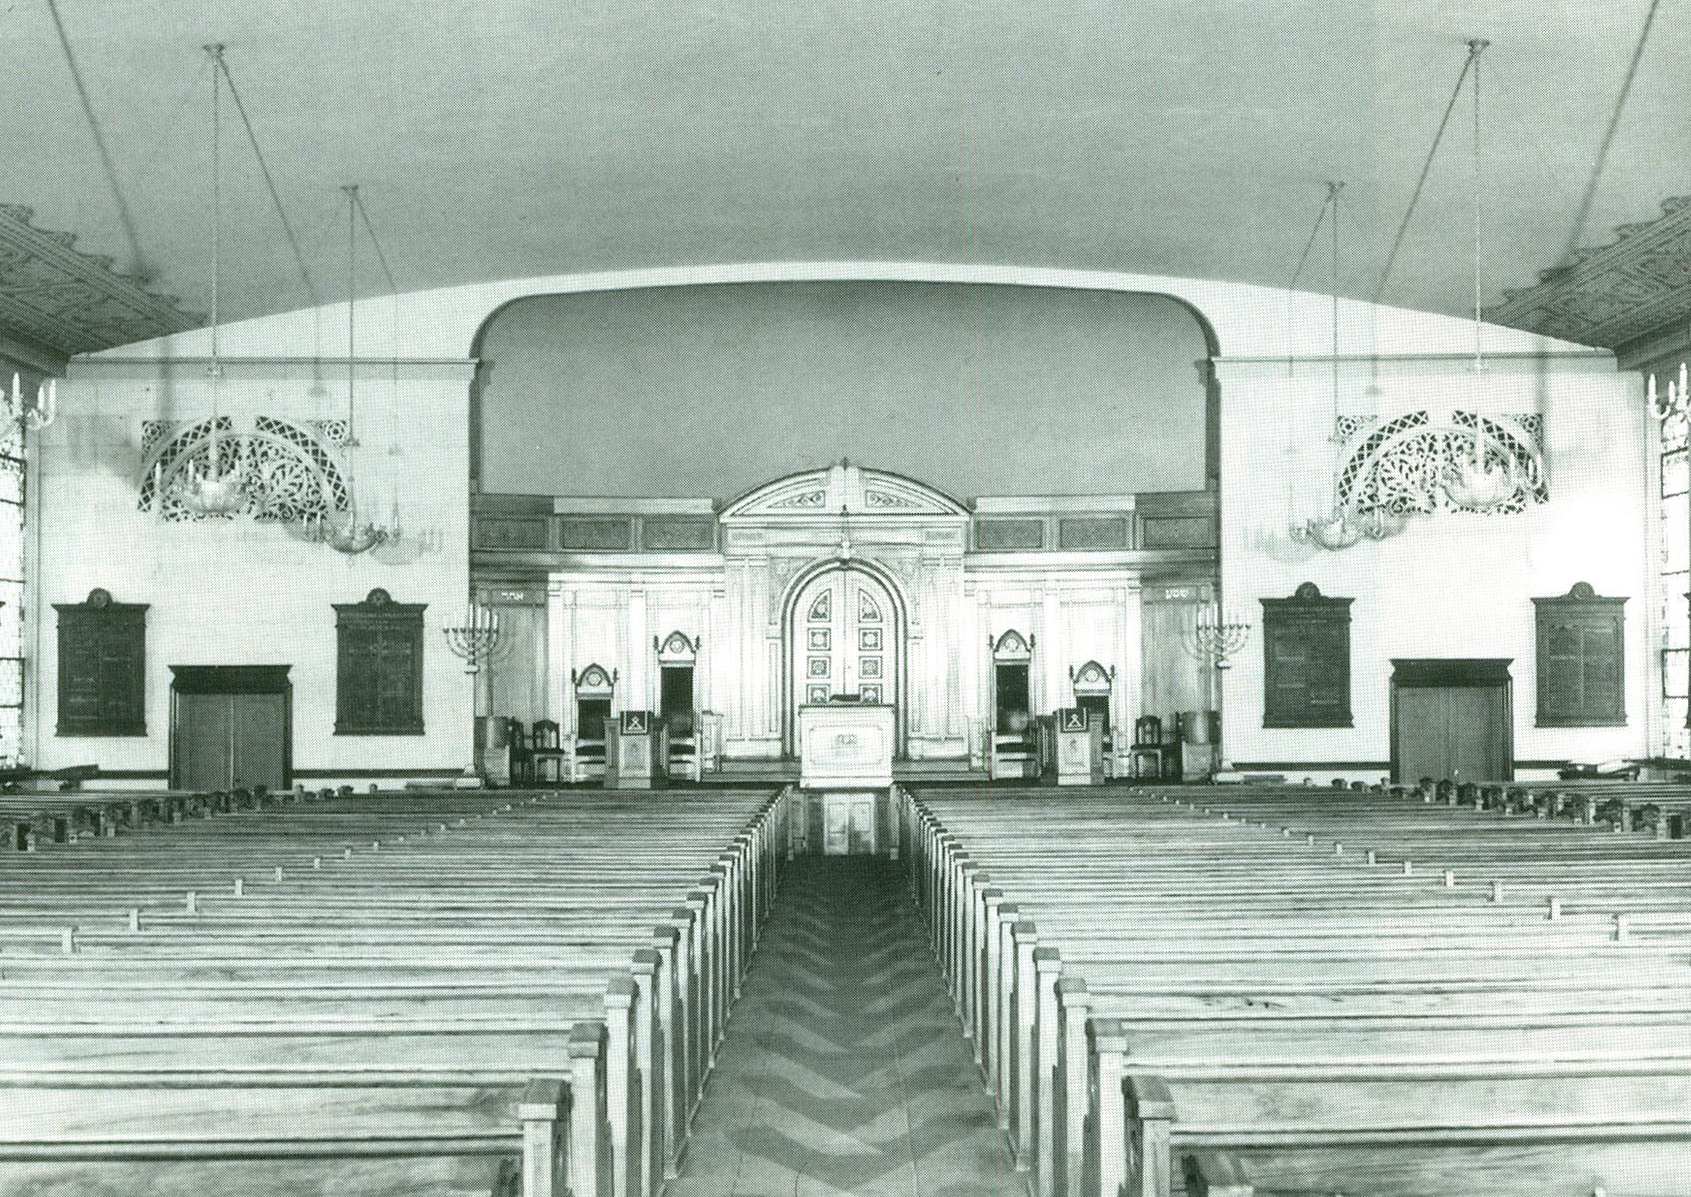 Beth Sholom's founding synagogue in Philadelphia (1919), prior to their suburban relocation to Wright's synagogue. The format of the sanctuary follows typical pew-based Christian configurations un-segregated by gender.